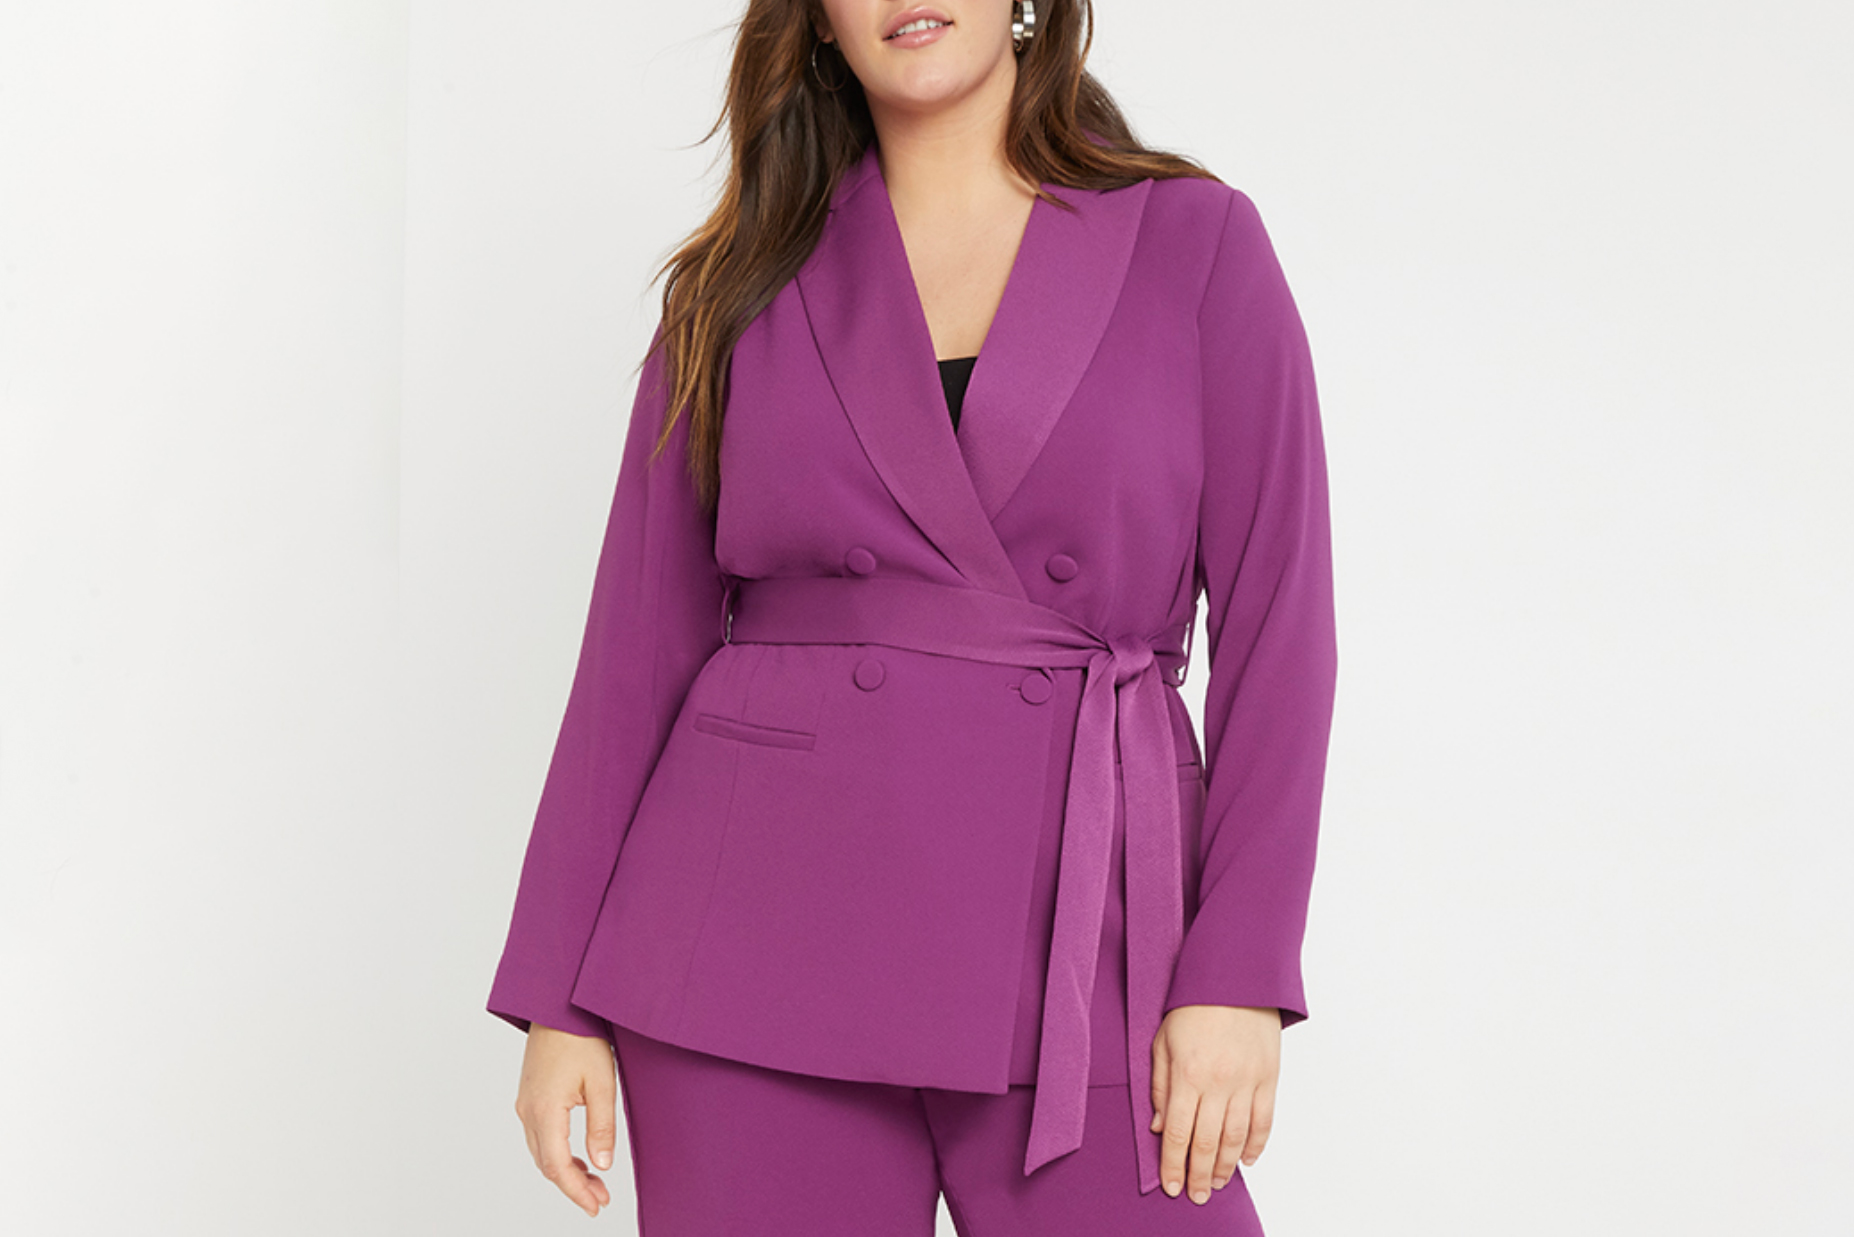 Eloquii Double Breasted Blazer with Tie